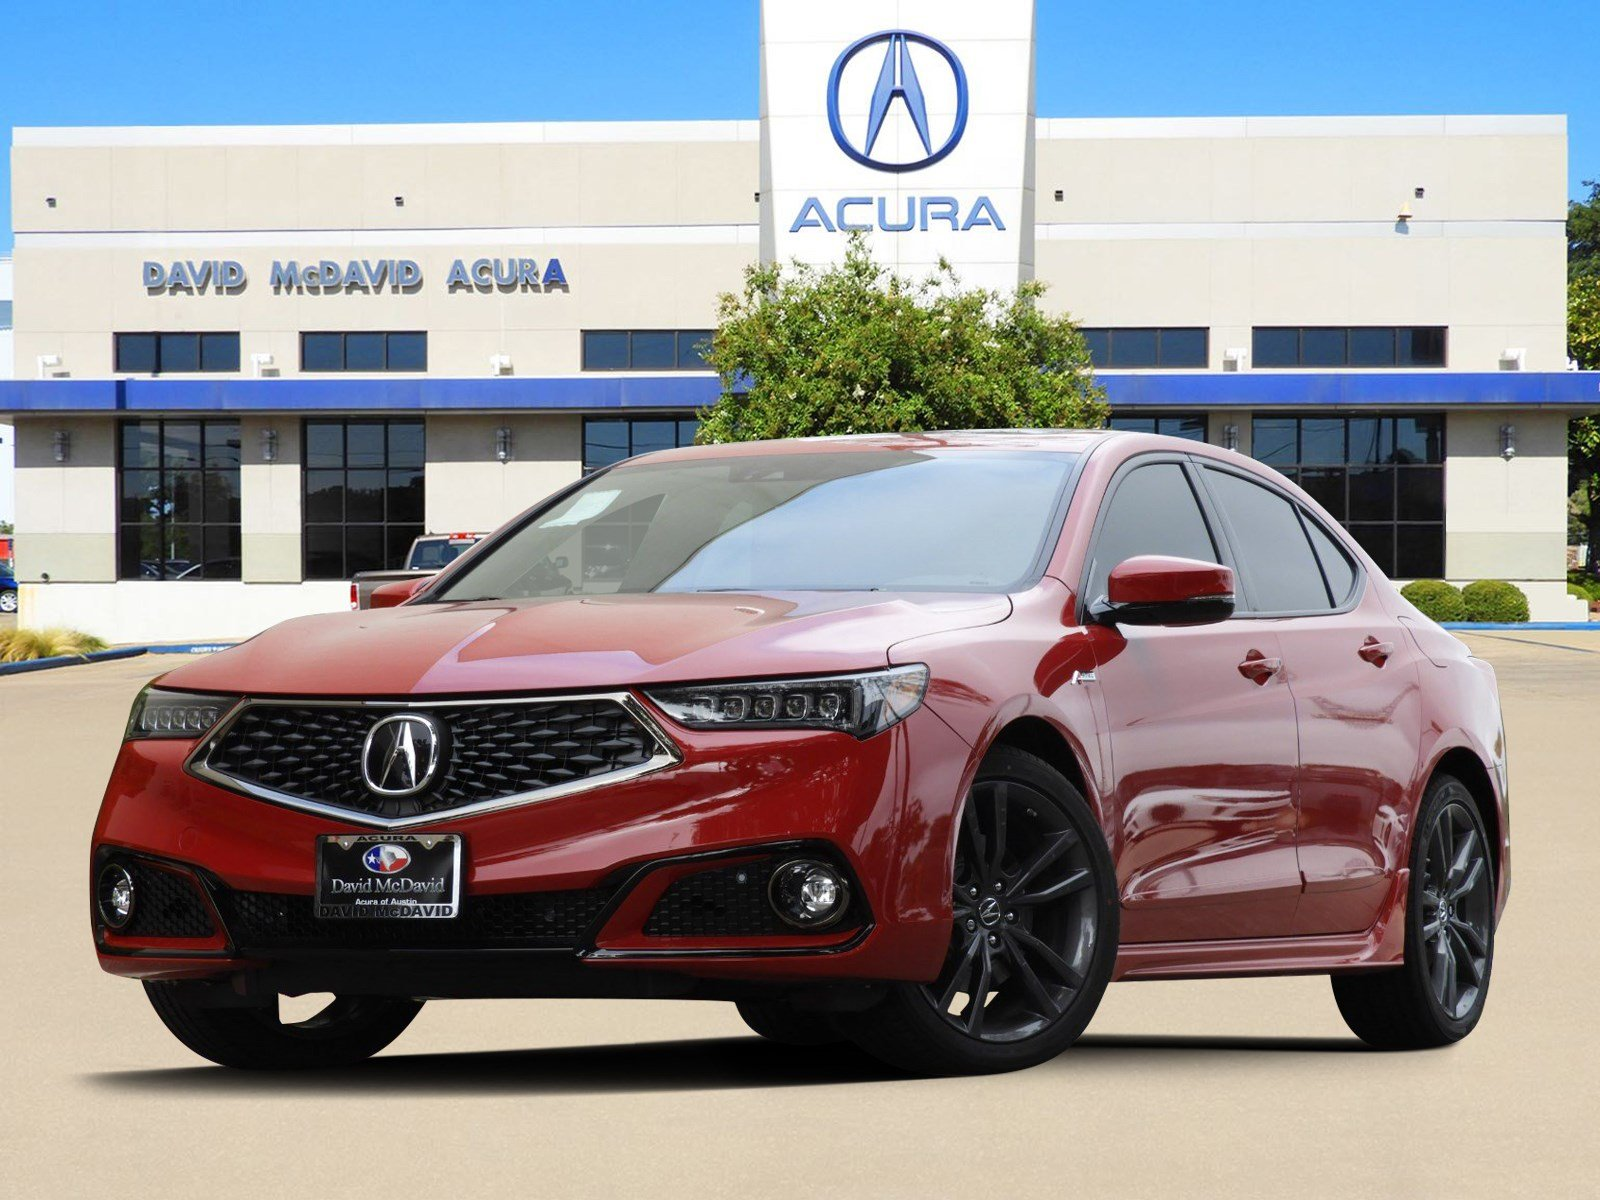 David Mcdavid Acura Austin >> Find The Best David Mcdavid S Featured New Acura Specials In Austin